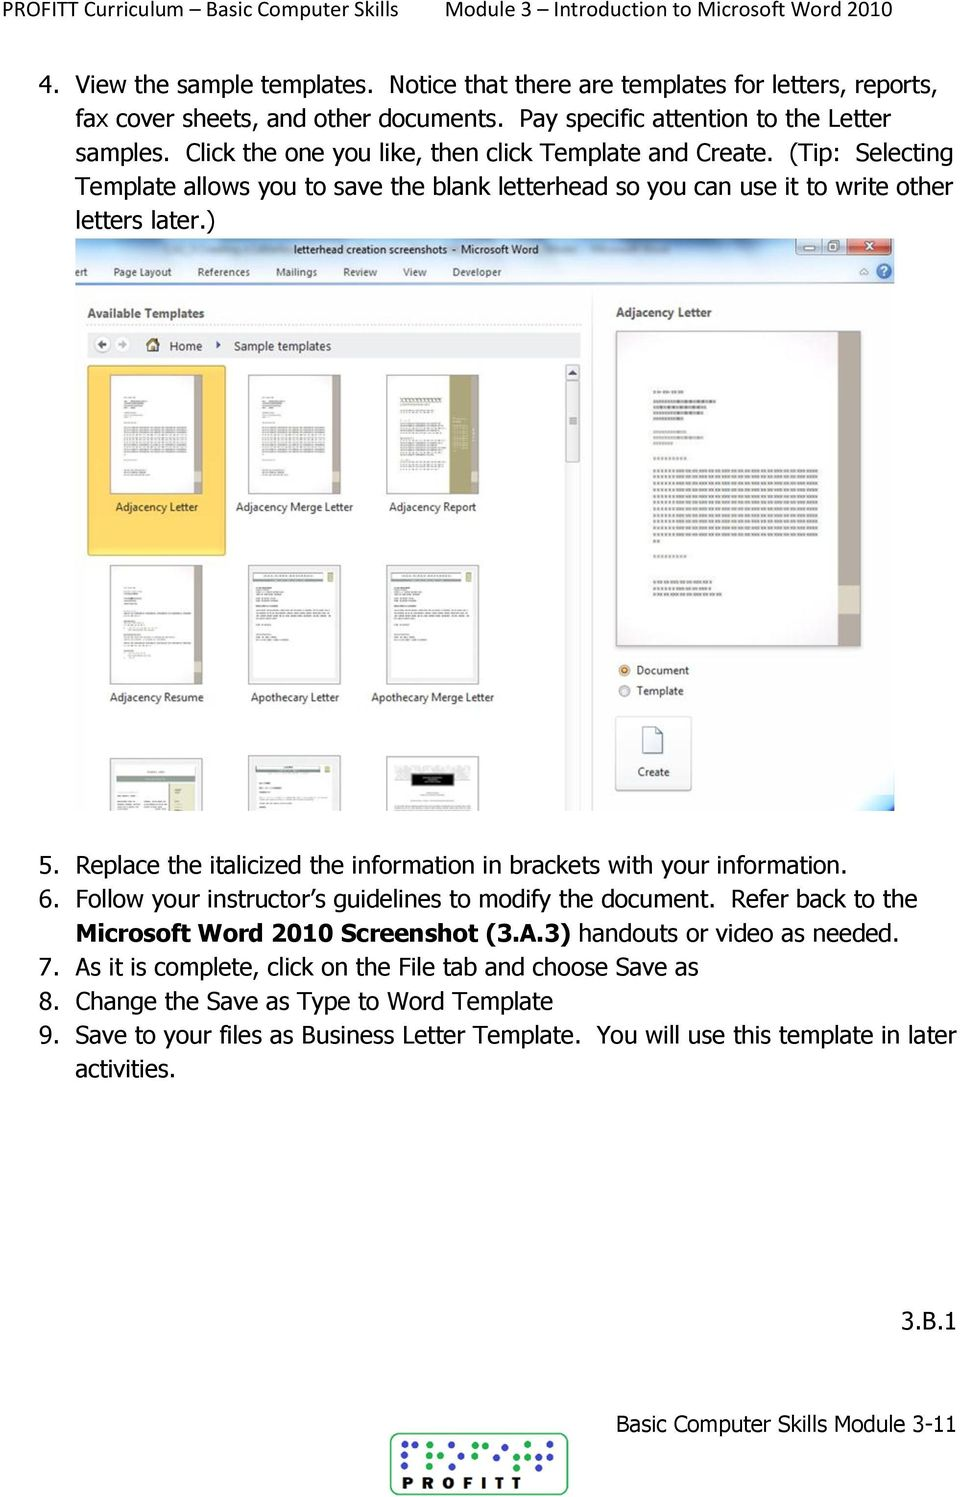 Replace the italicized the information in brackets with your information. 6. Follow your instructor s guidelines to modify the document. Refer back to the Microsoft Word 2010 Screenshot (3.A.